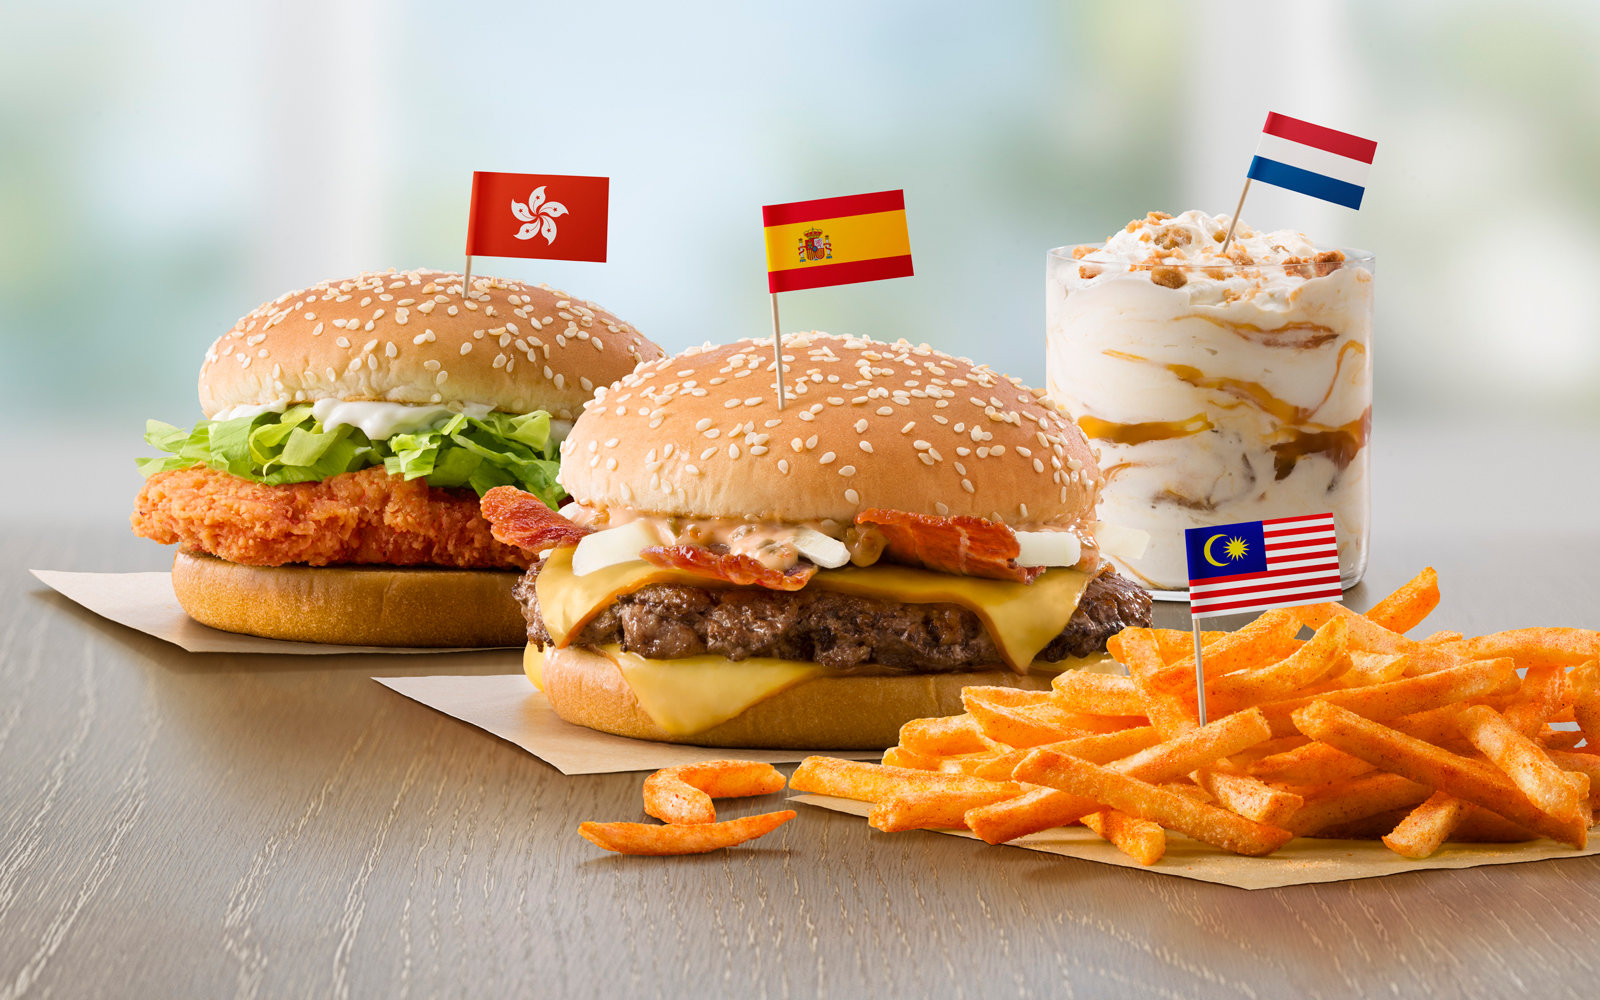 These Popular International McDonald's Items Are Coming to the U.S.